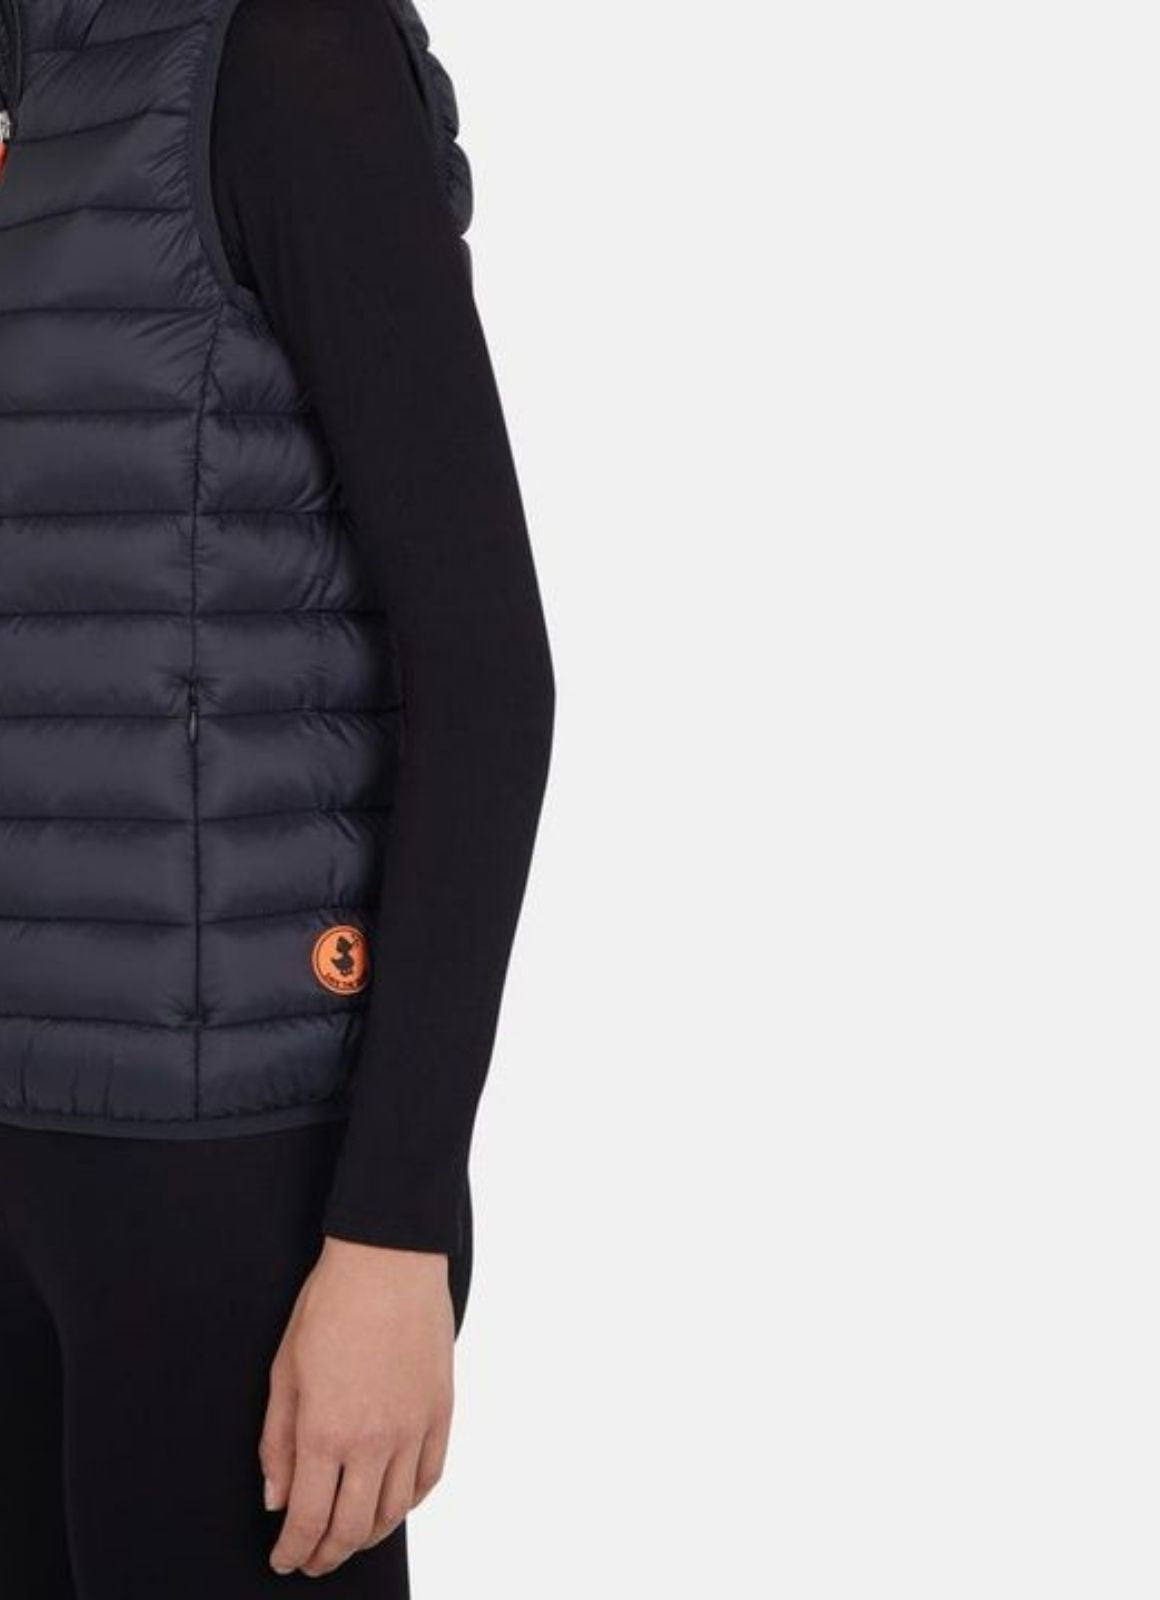 SAVE THE DUCK WOMENS VEST IN GIGA GREY BLACK